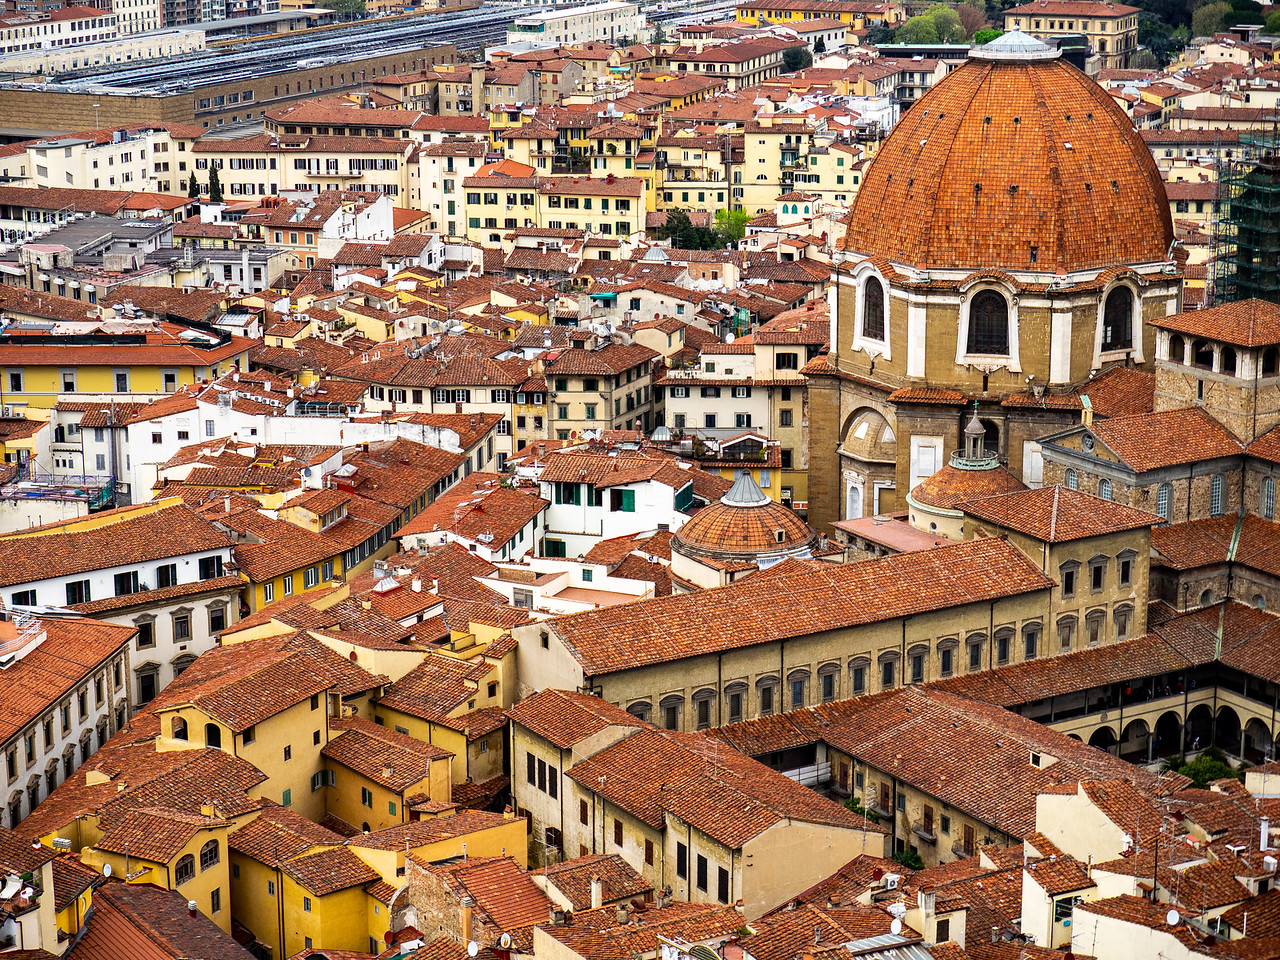 View from Duomo